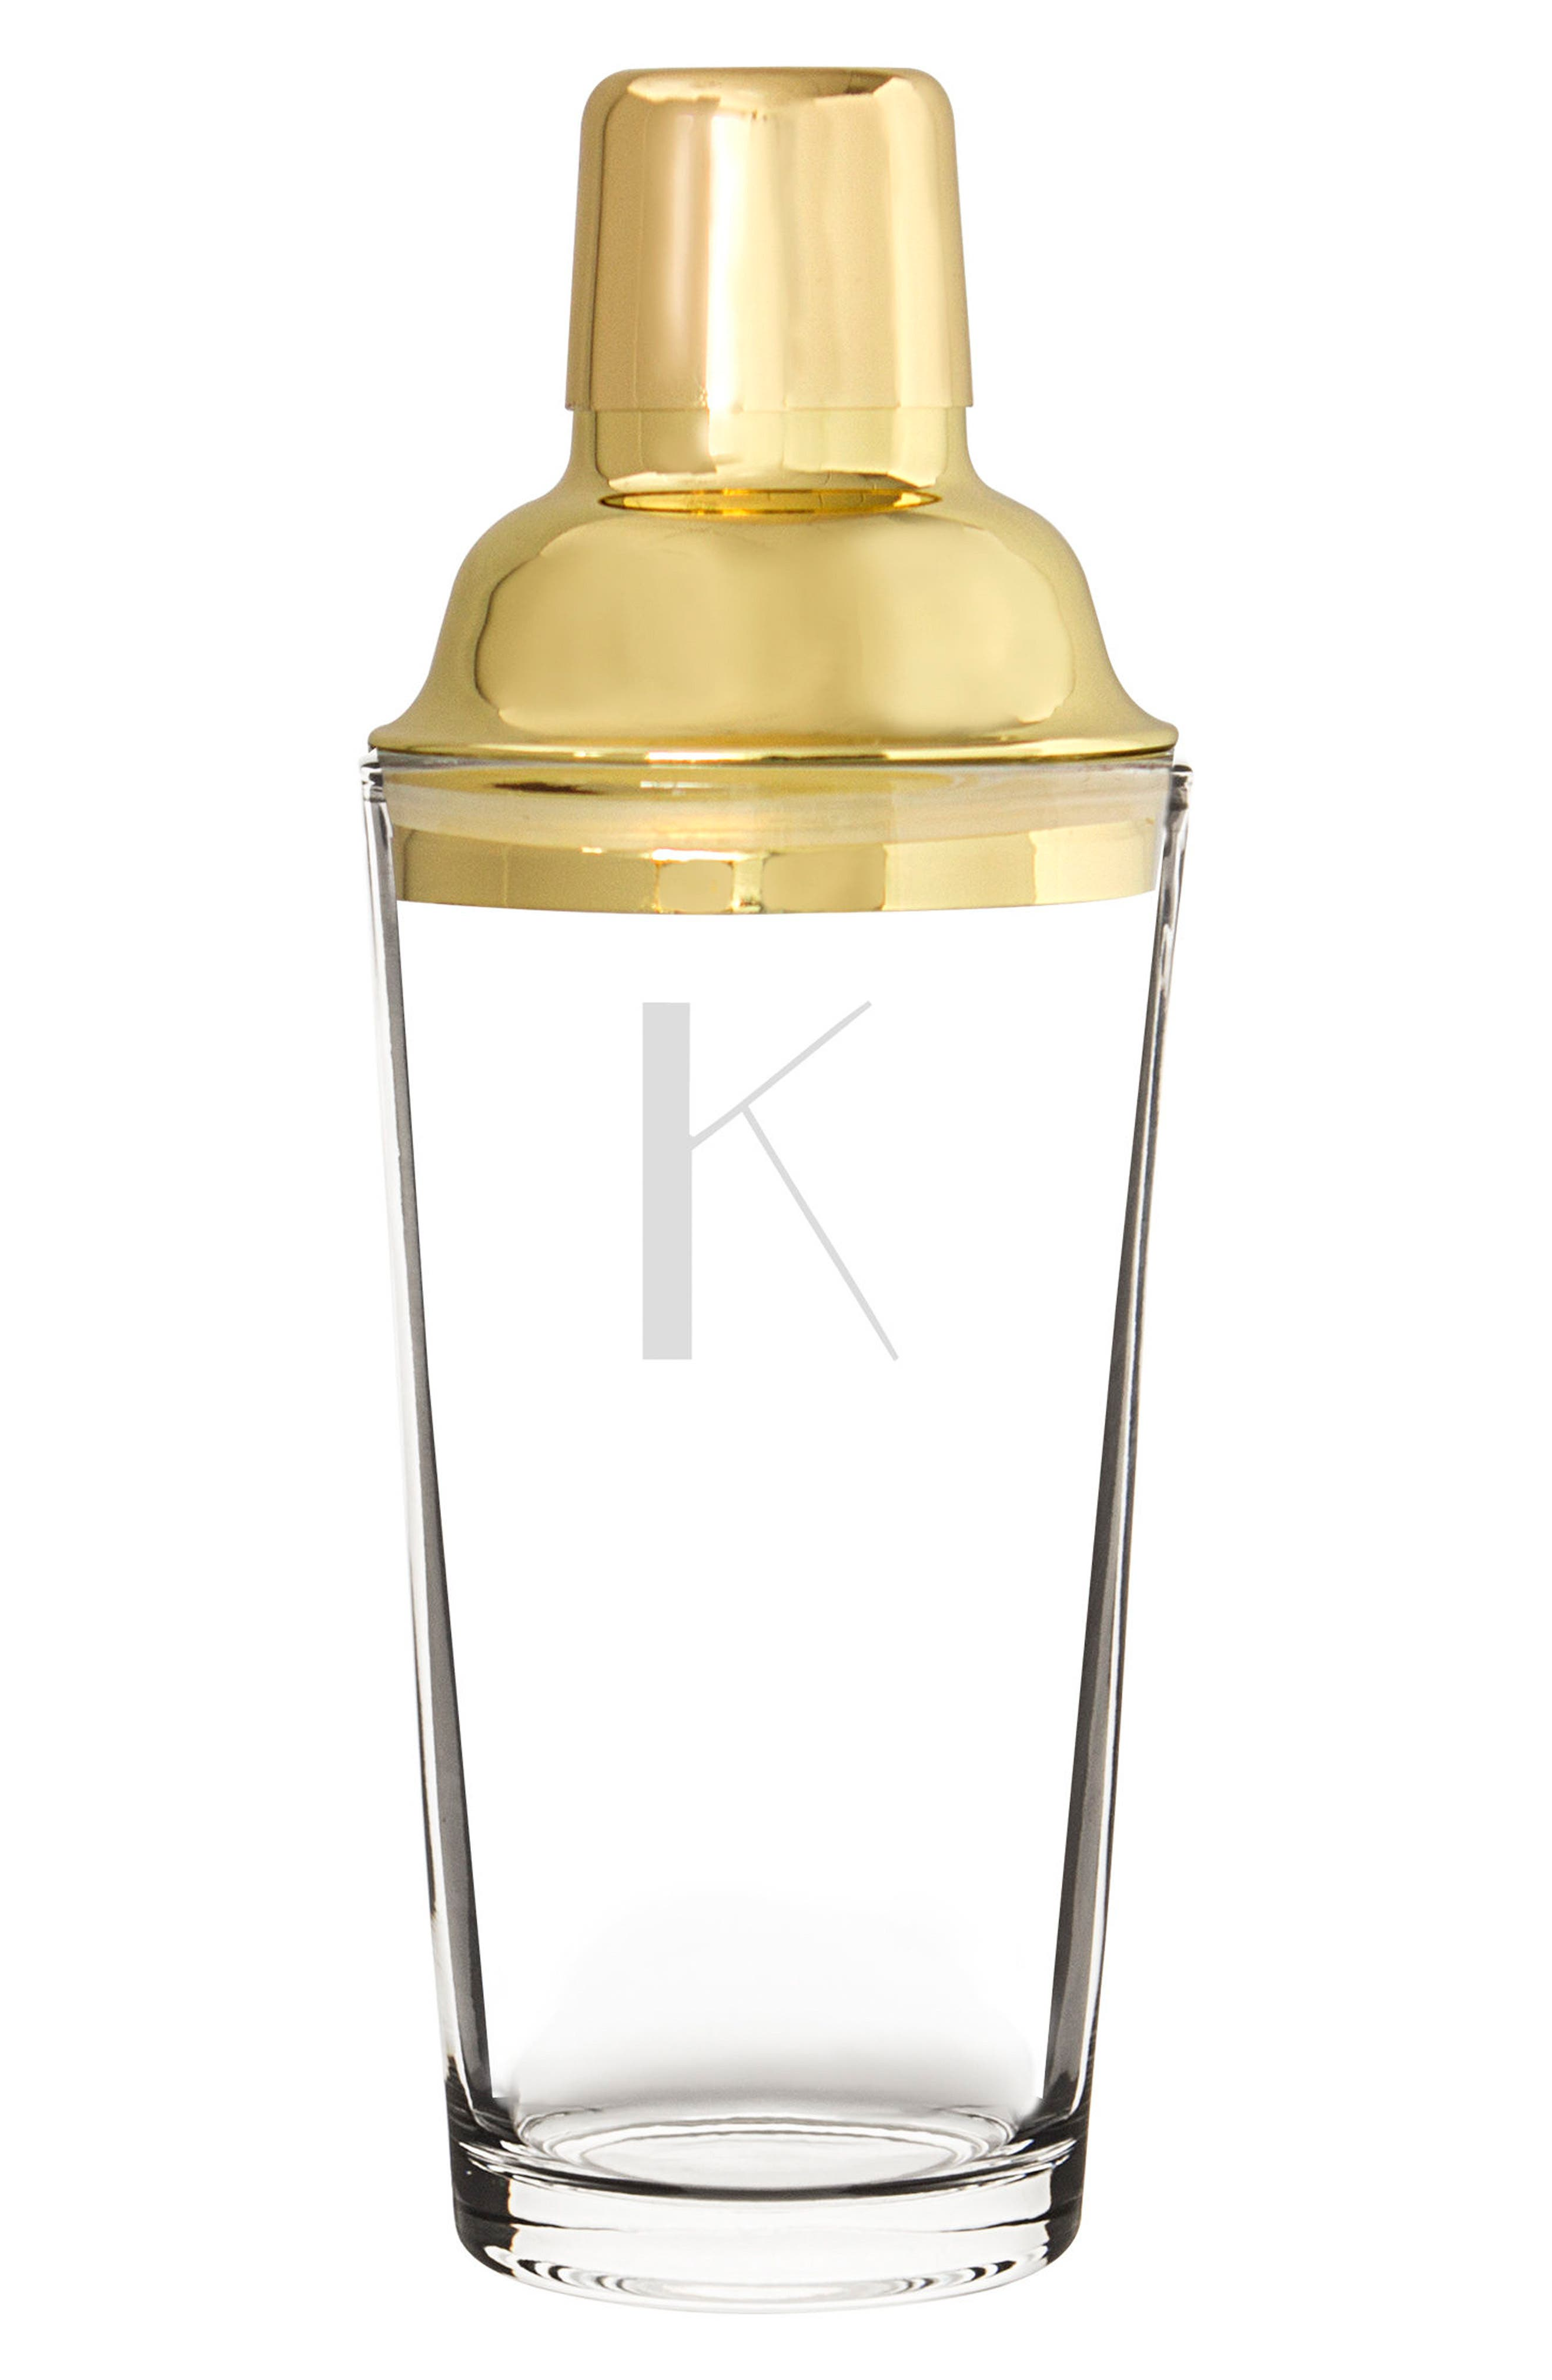 Cathy's Concepts Monogram Goldtone Cocktail Shaker